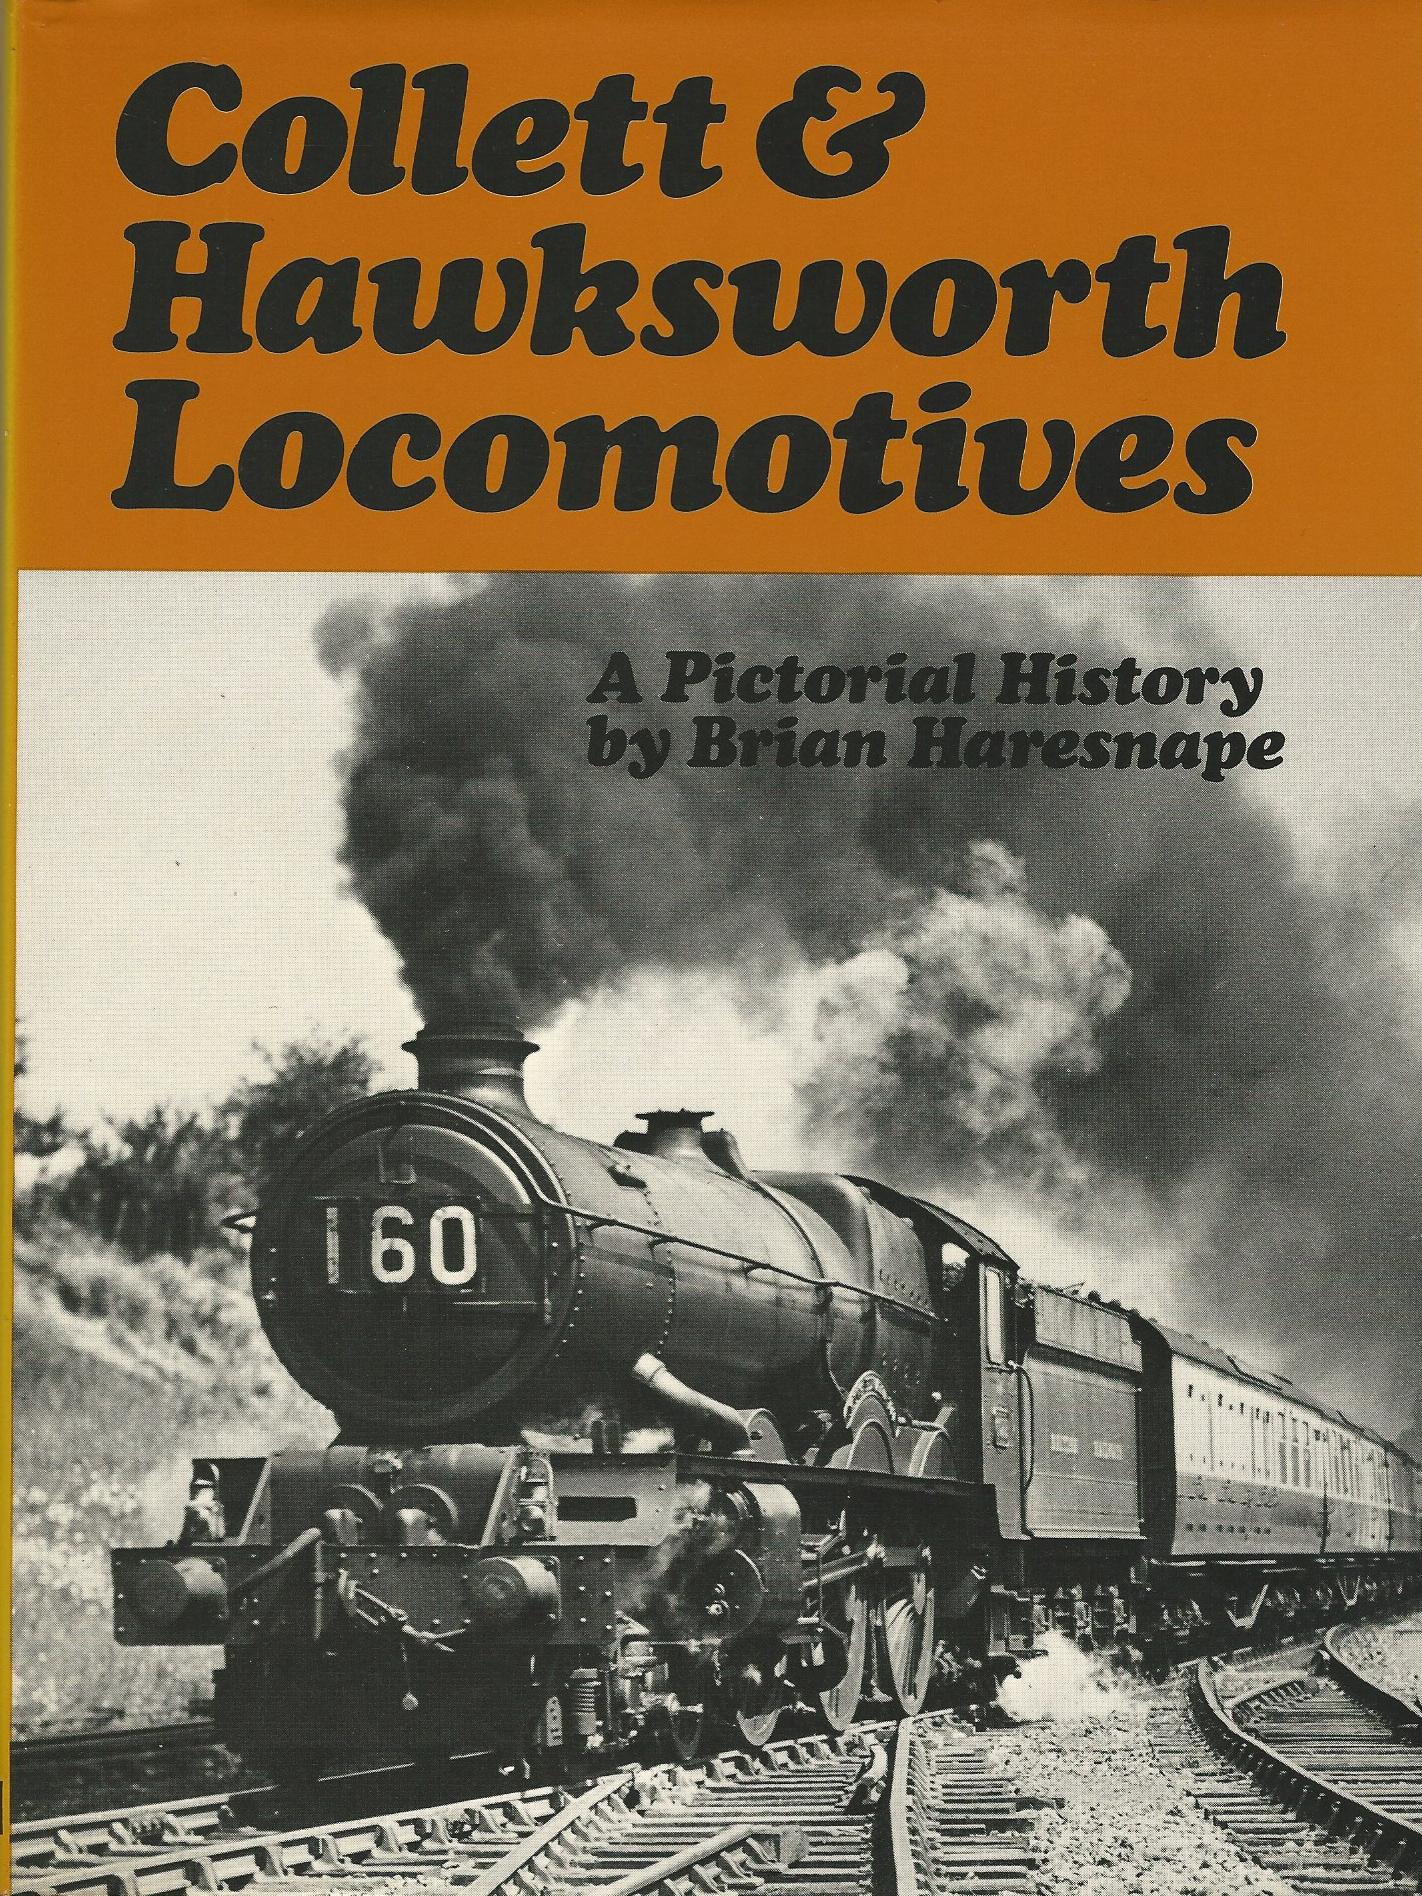 Image for Collett & Hawksworth locomotives: A pictorial history